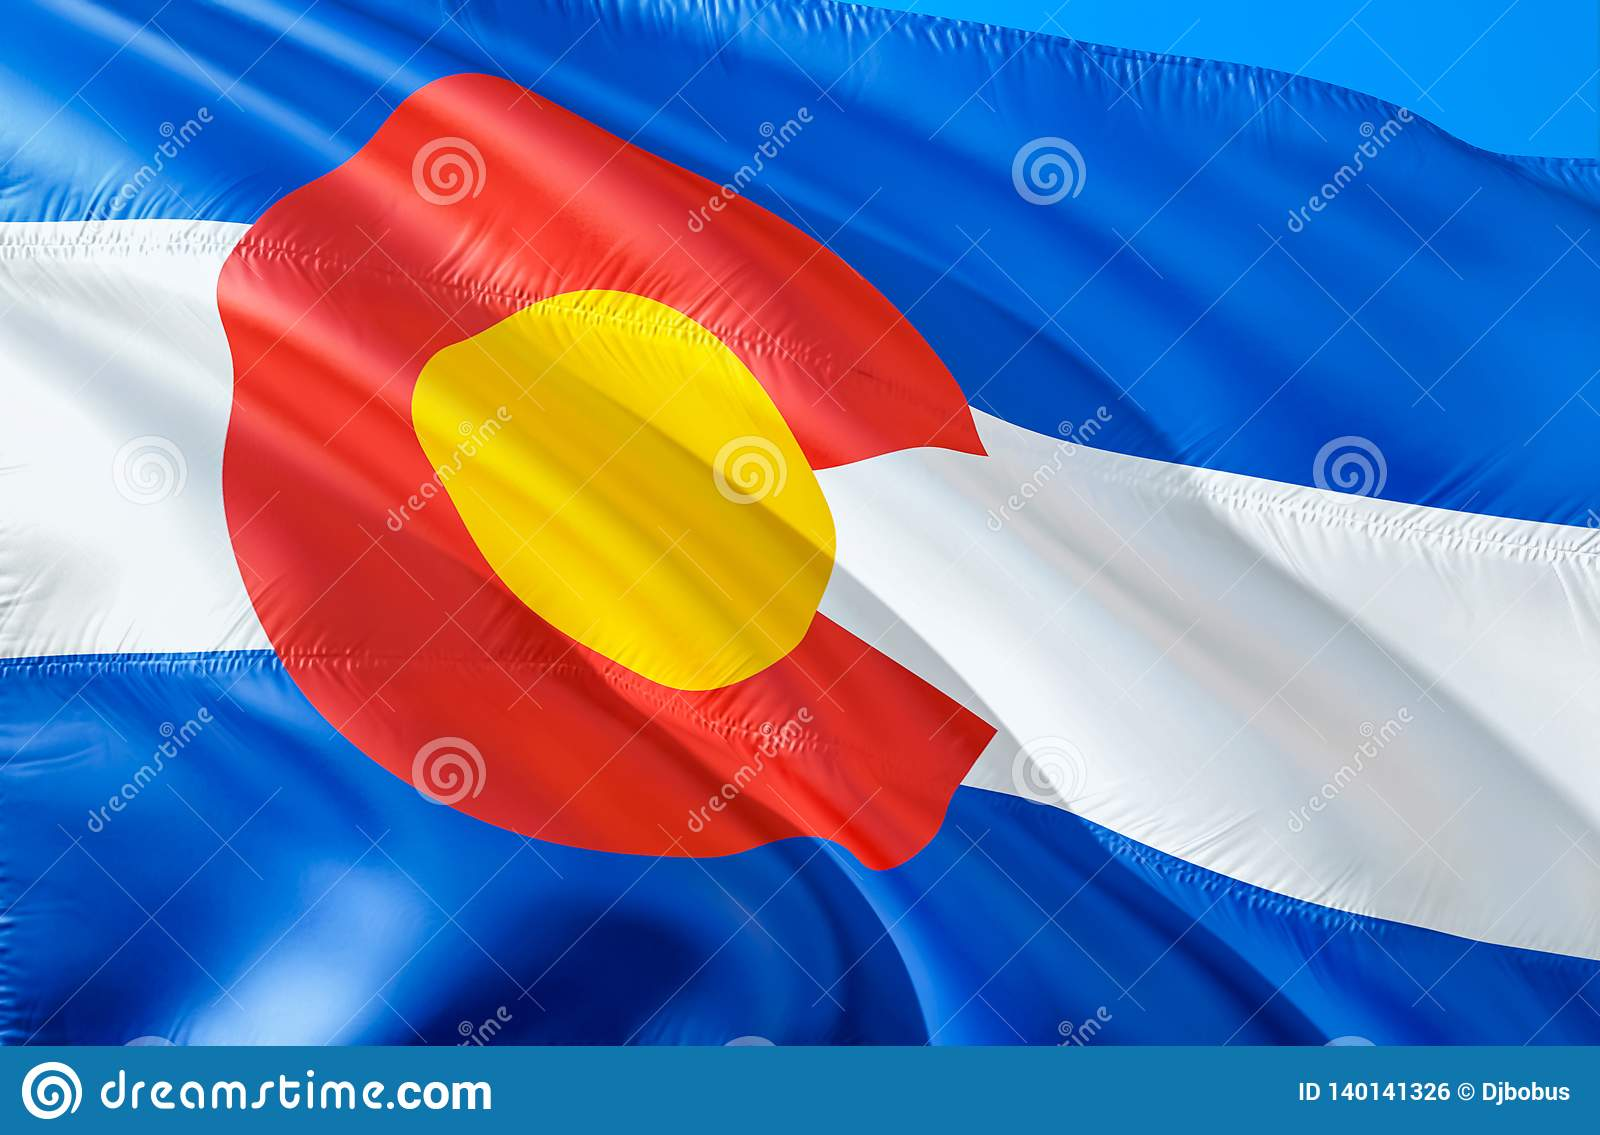 Colorado flag. 3D Waving USA state flag design. The national US symbol of Colorado state, 3D rendering. National colors and